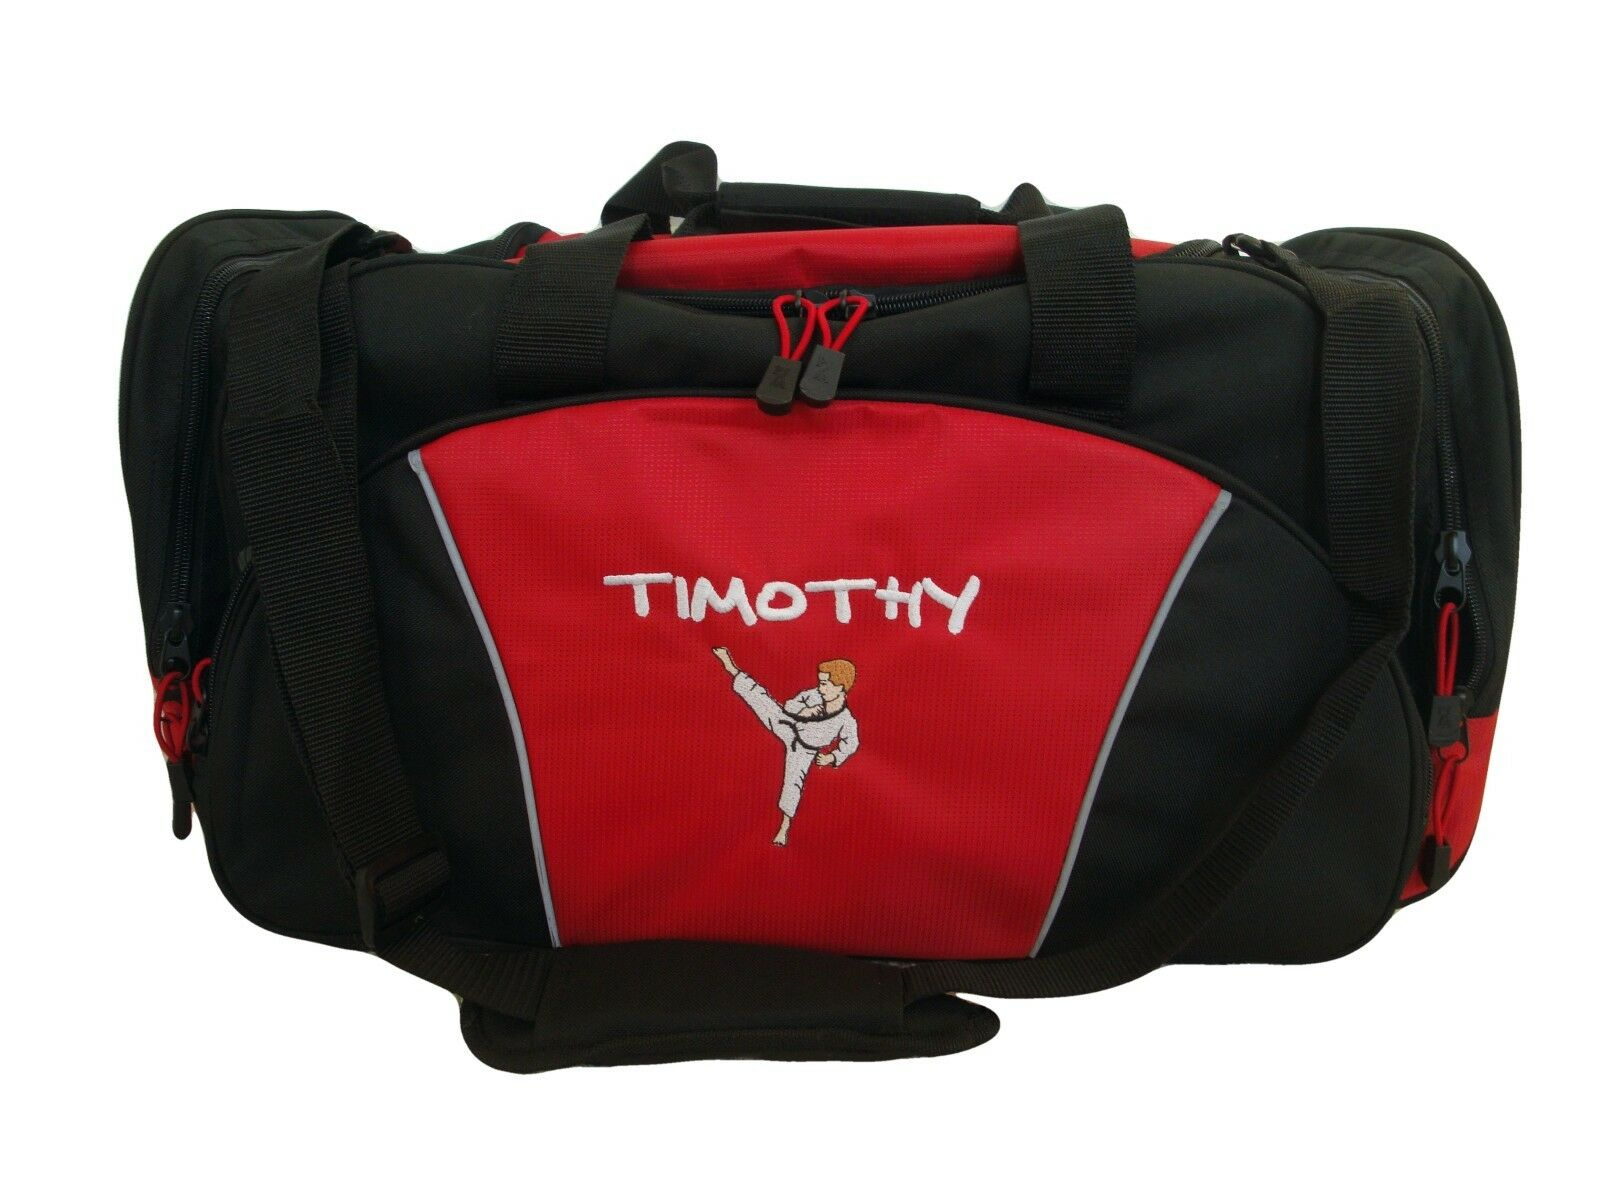 Duffel Bag Personalized Karate Boy Martial Arts Kung Fu  Tae Kwon Do Asian Boxing  free shipping & exchanges.